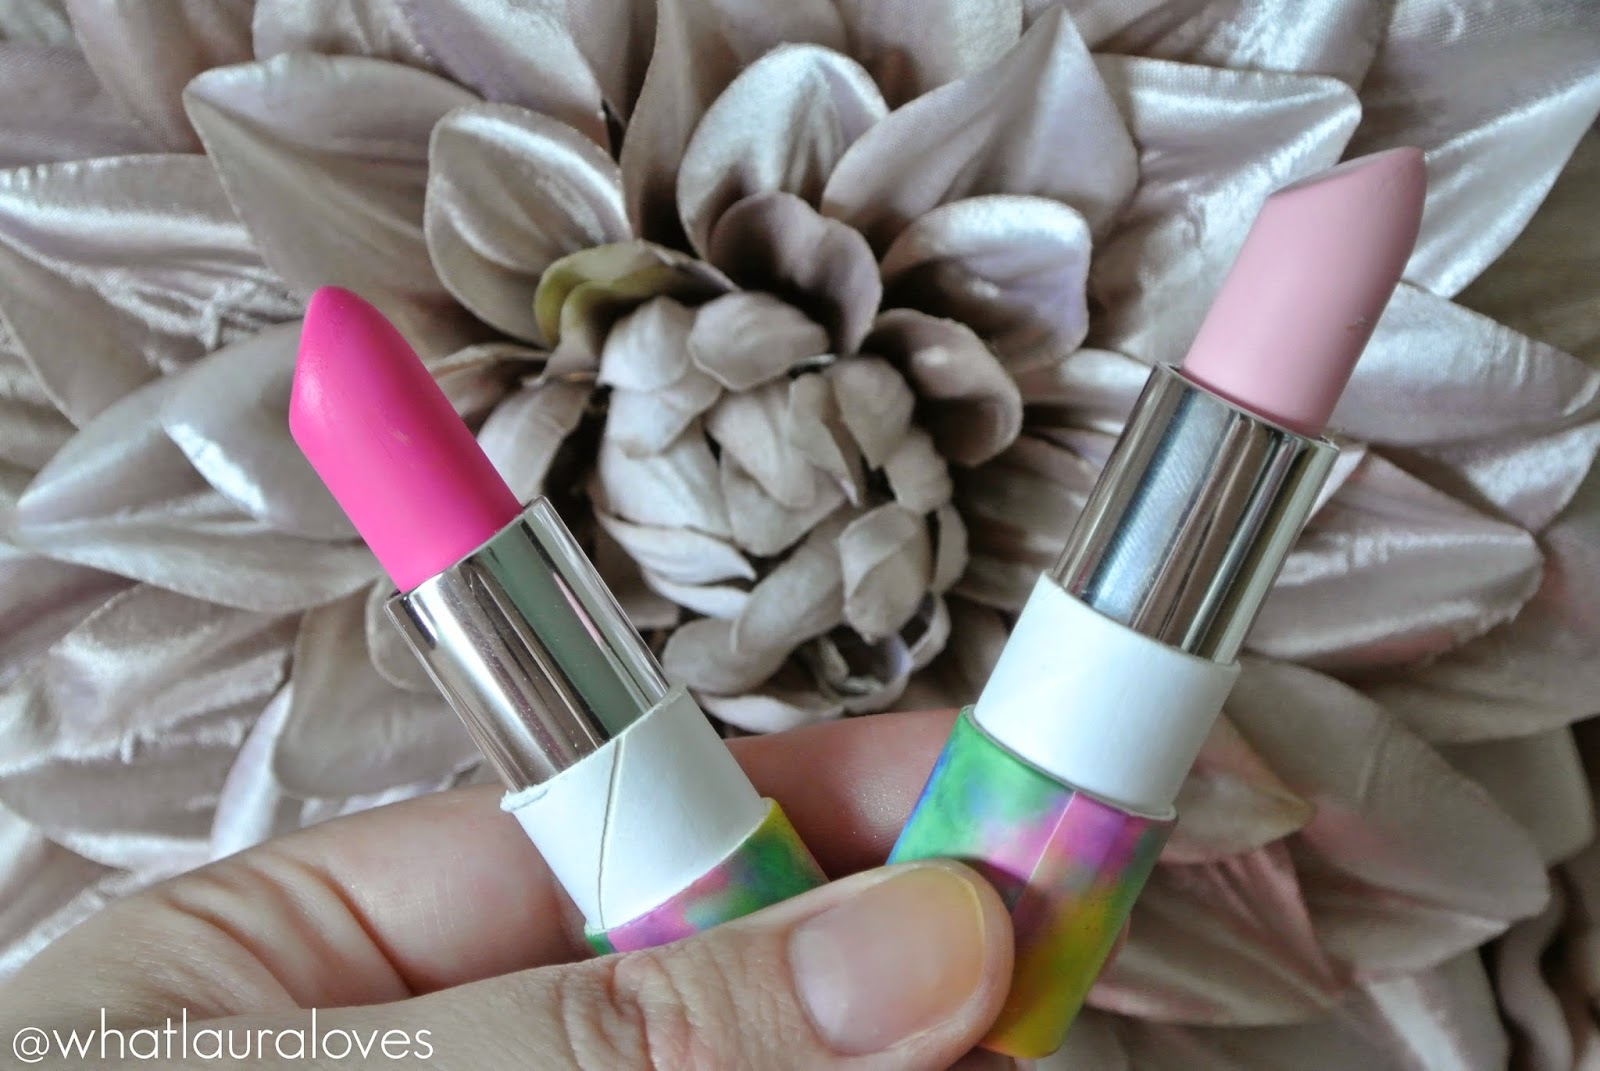 Models Own Festival Collection Lipsticks in Gone Glamping and Daisy Chain